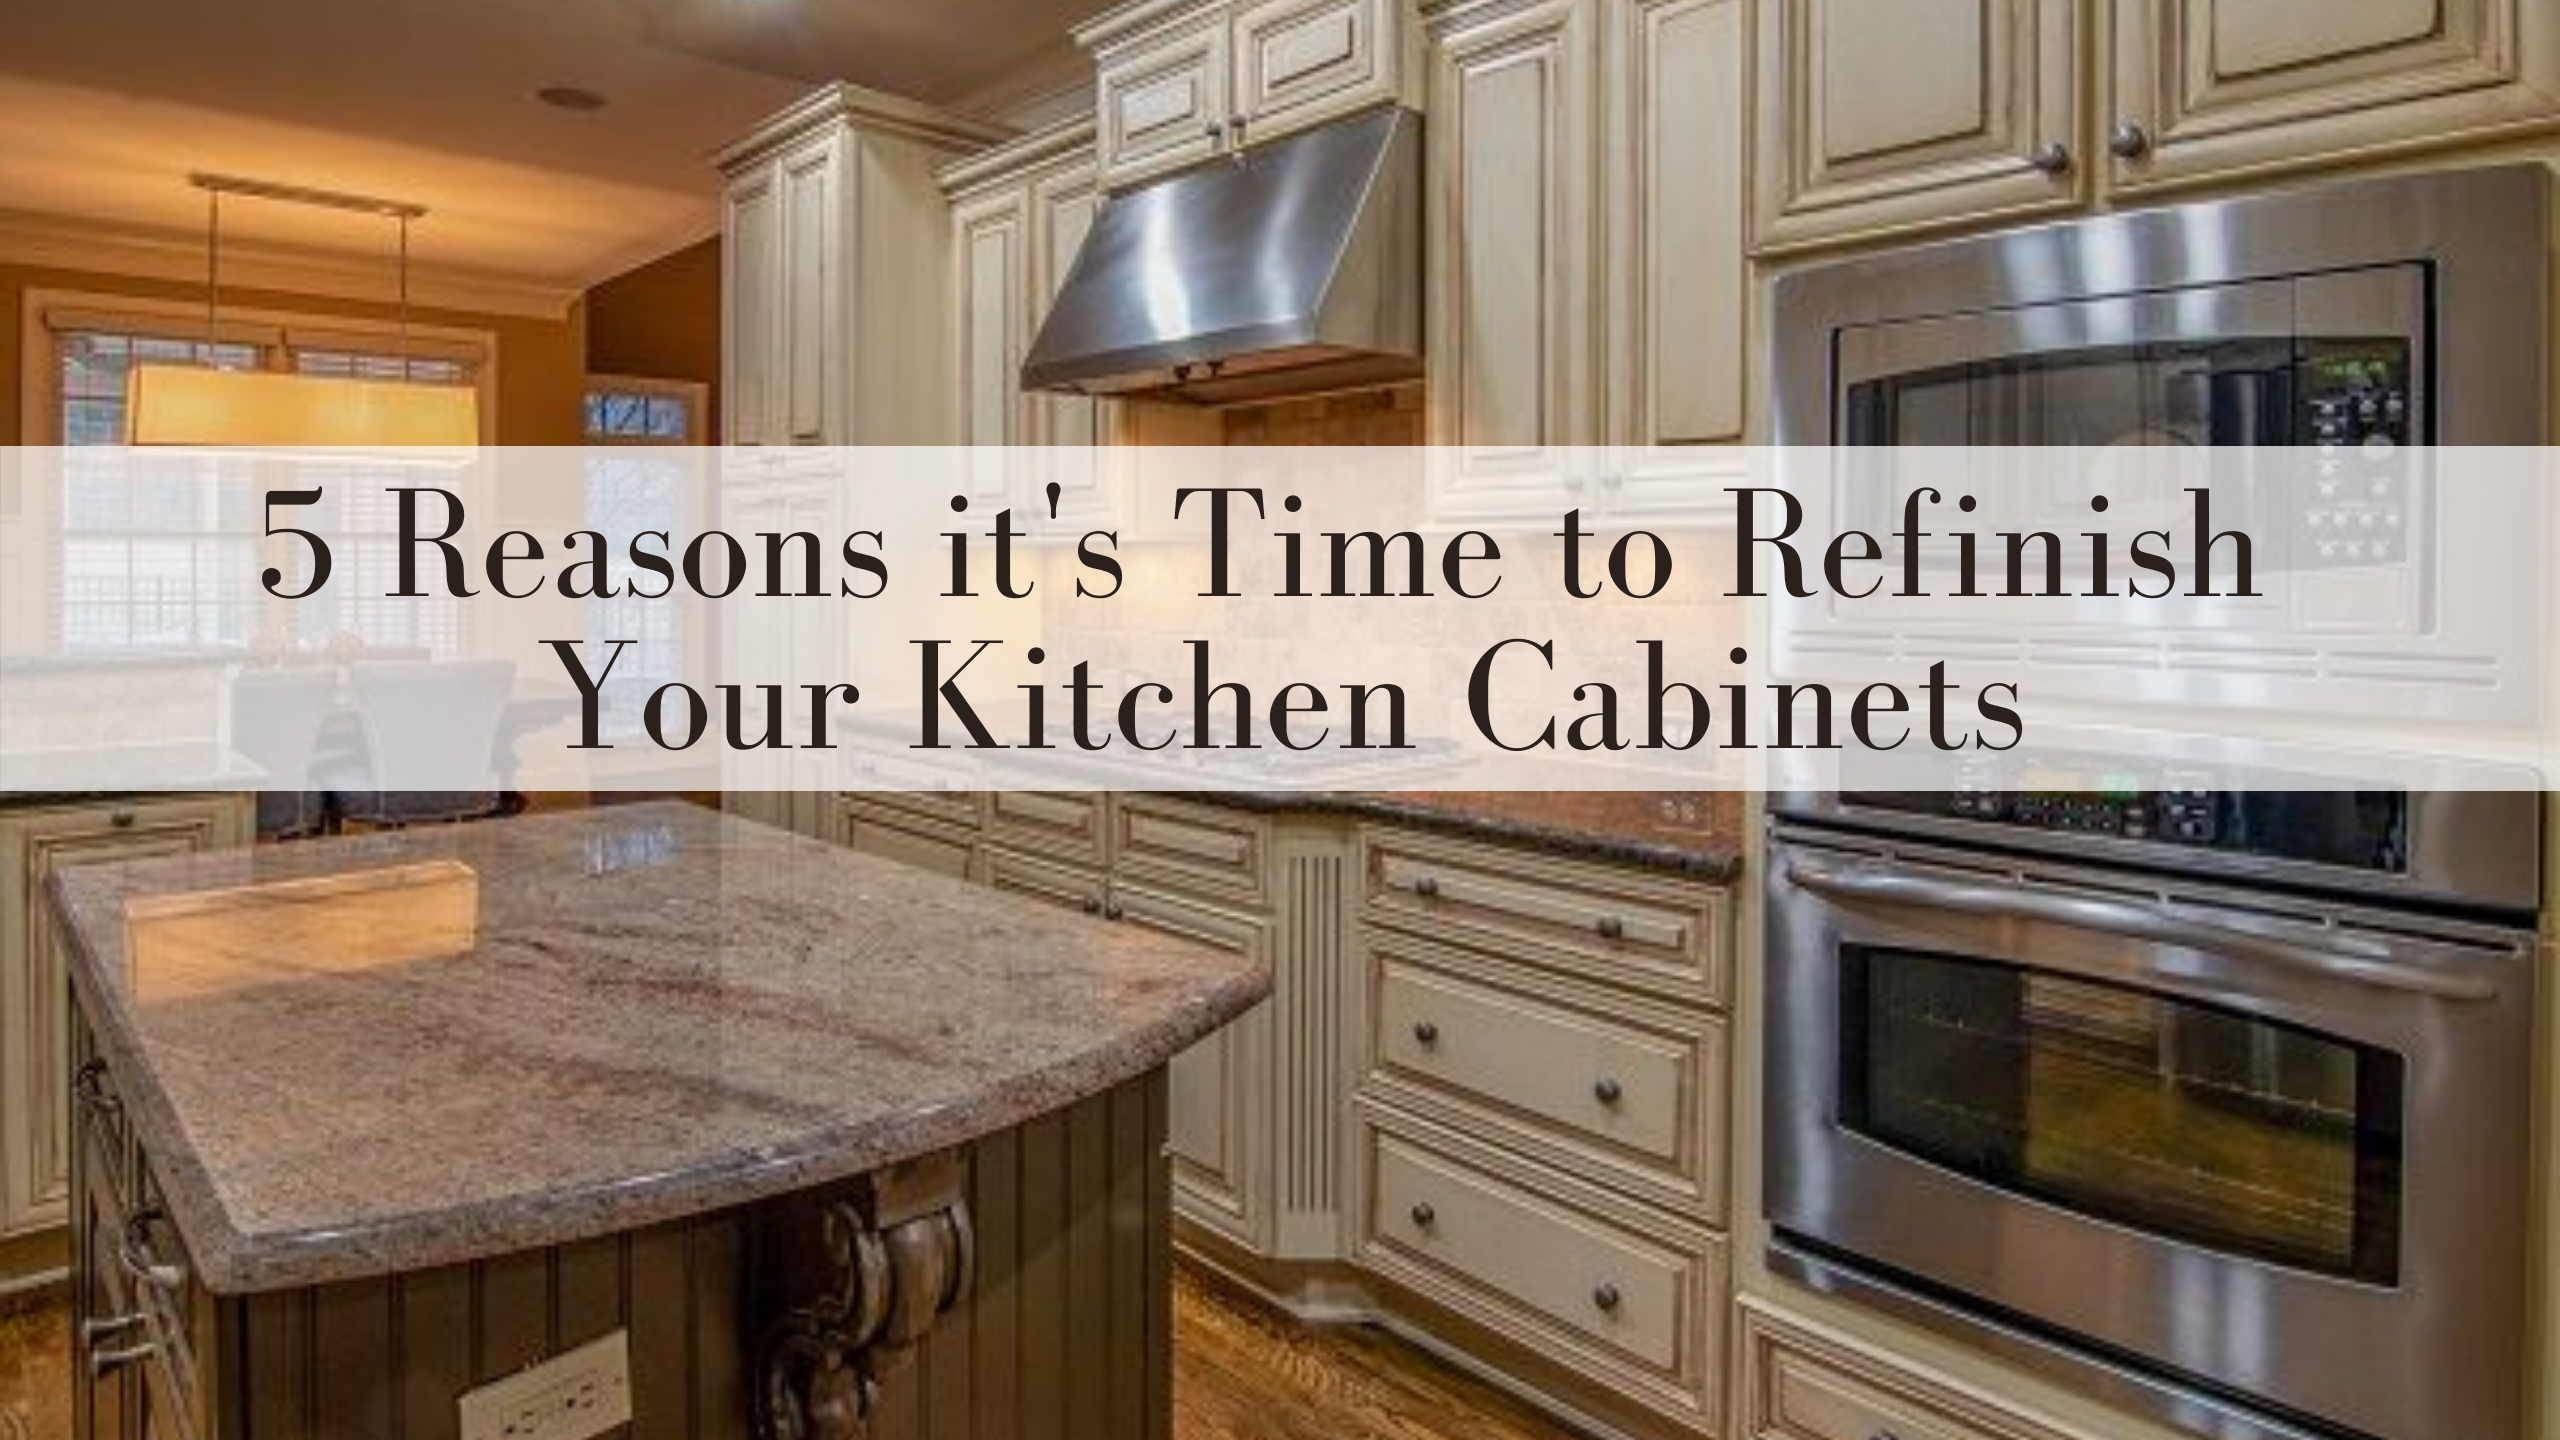 5 Reasons it's Time to Refinish Your Kitchen Cabinets in Omaha, NE